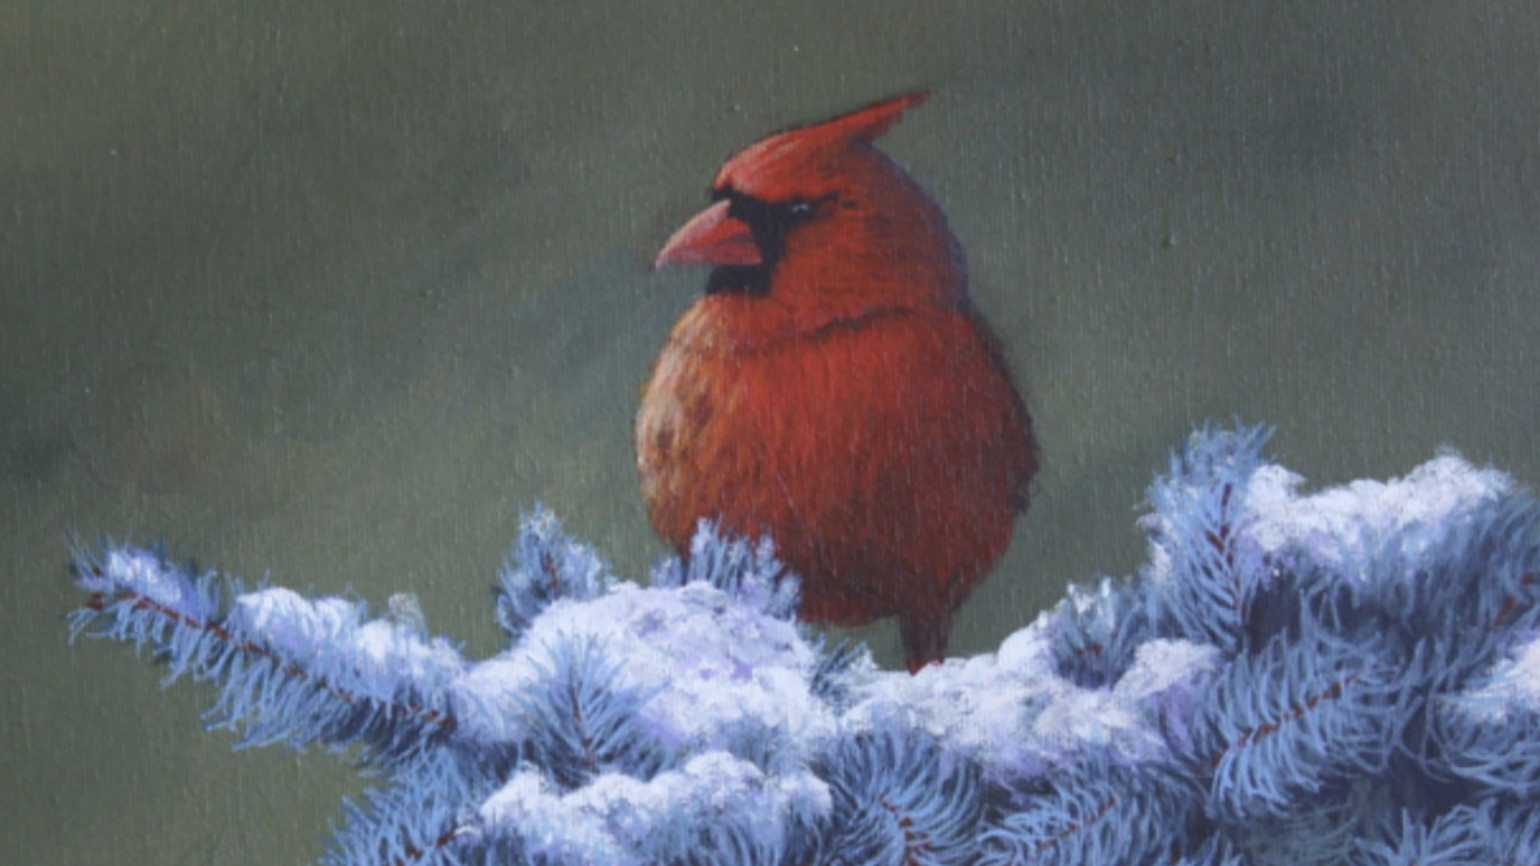 A cardinal perched on a snowy pine tree; Photo courtesy: Sherrie Moffitt